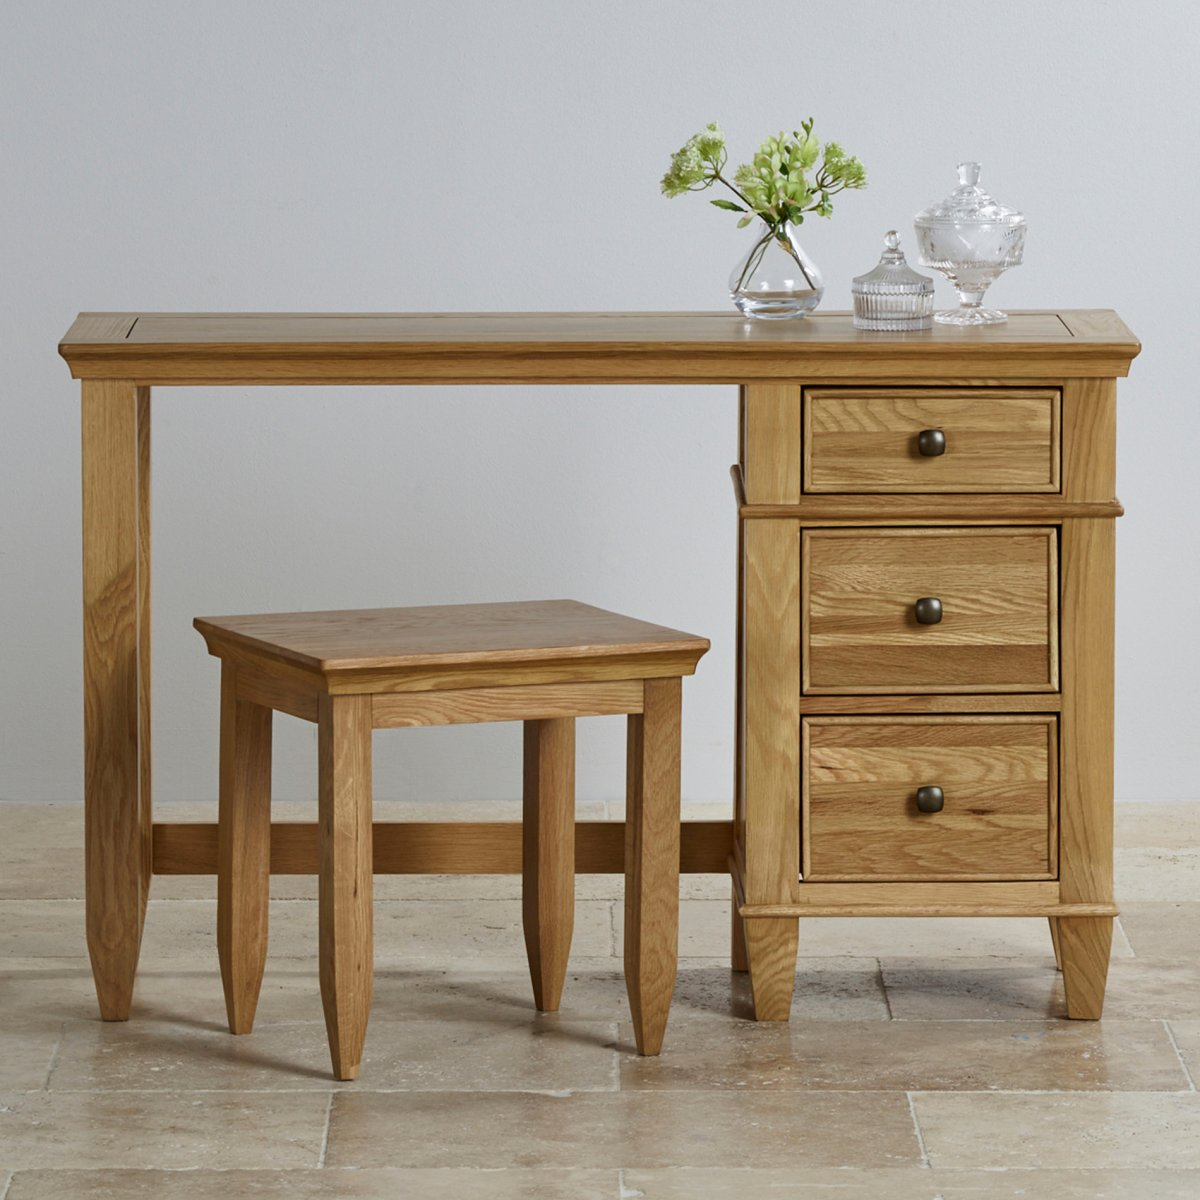 Classic dressing table stool in solid oak furniture land